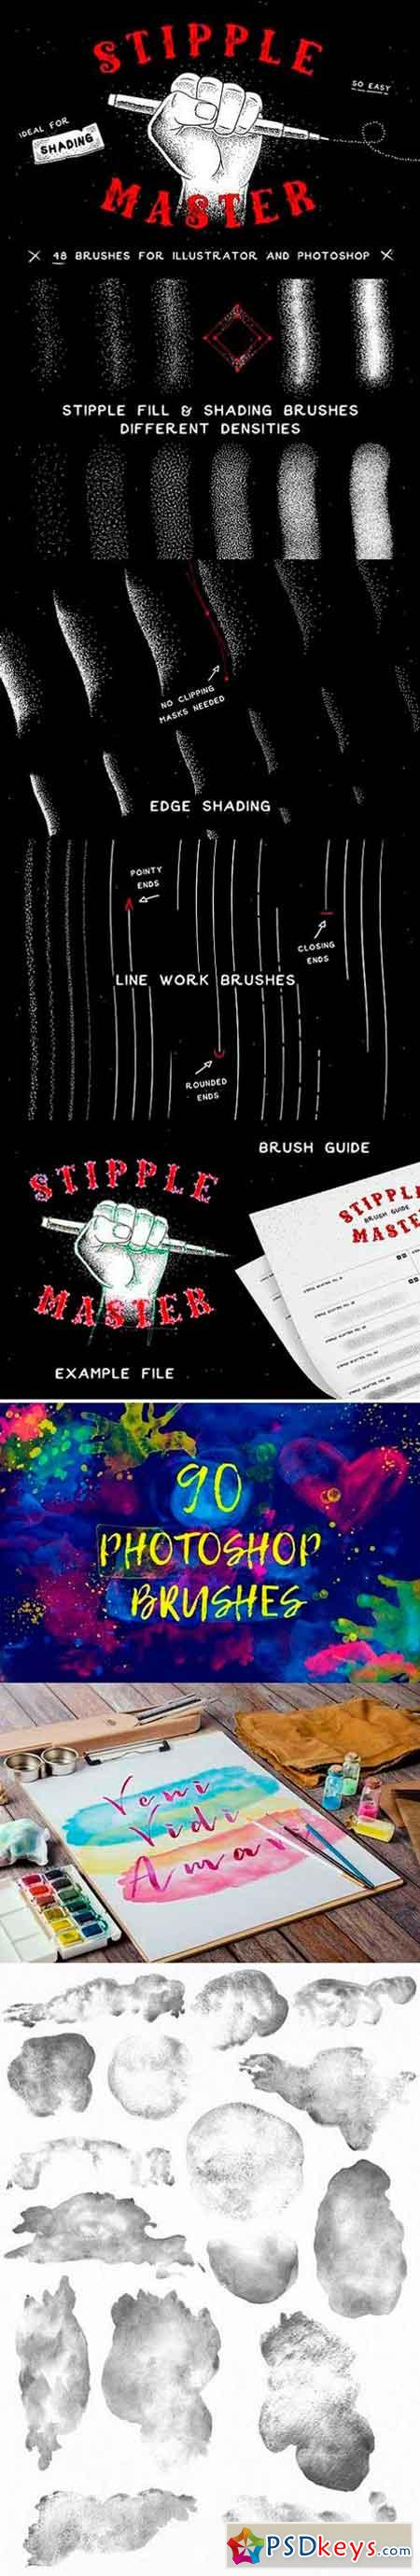 Photoshop Brushes Bundle 1